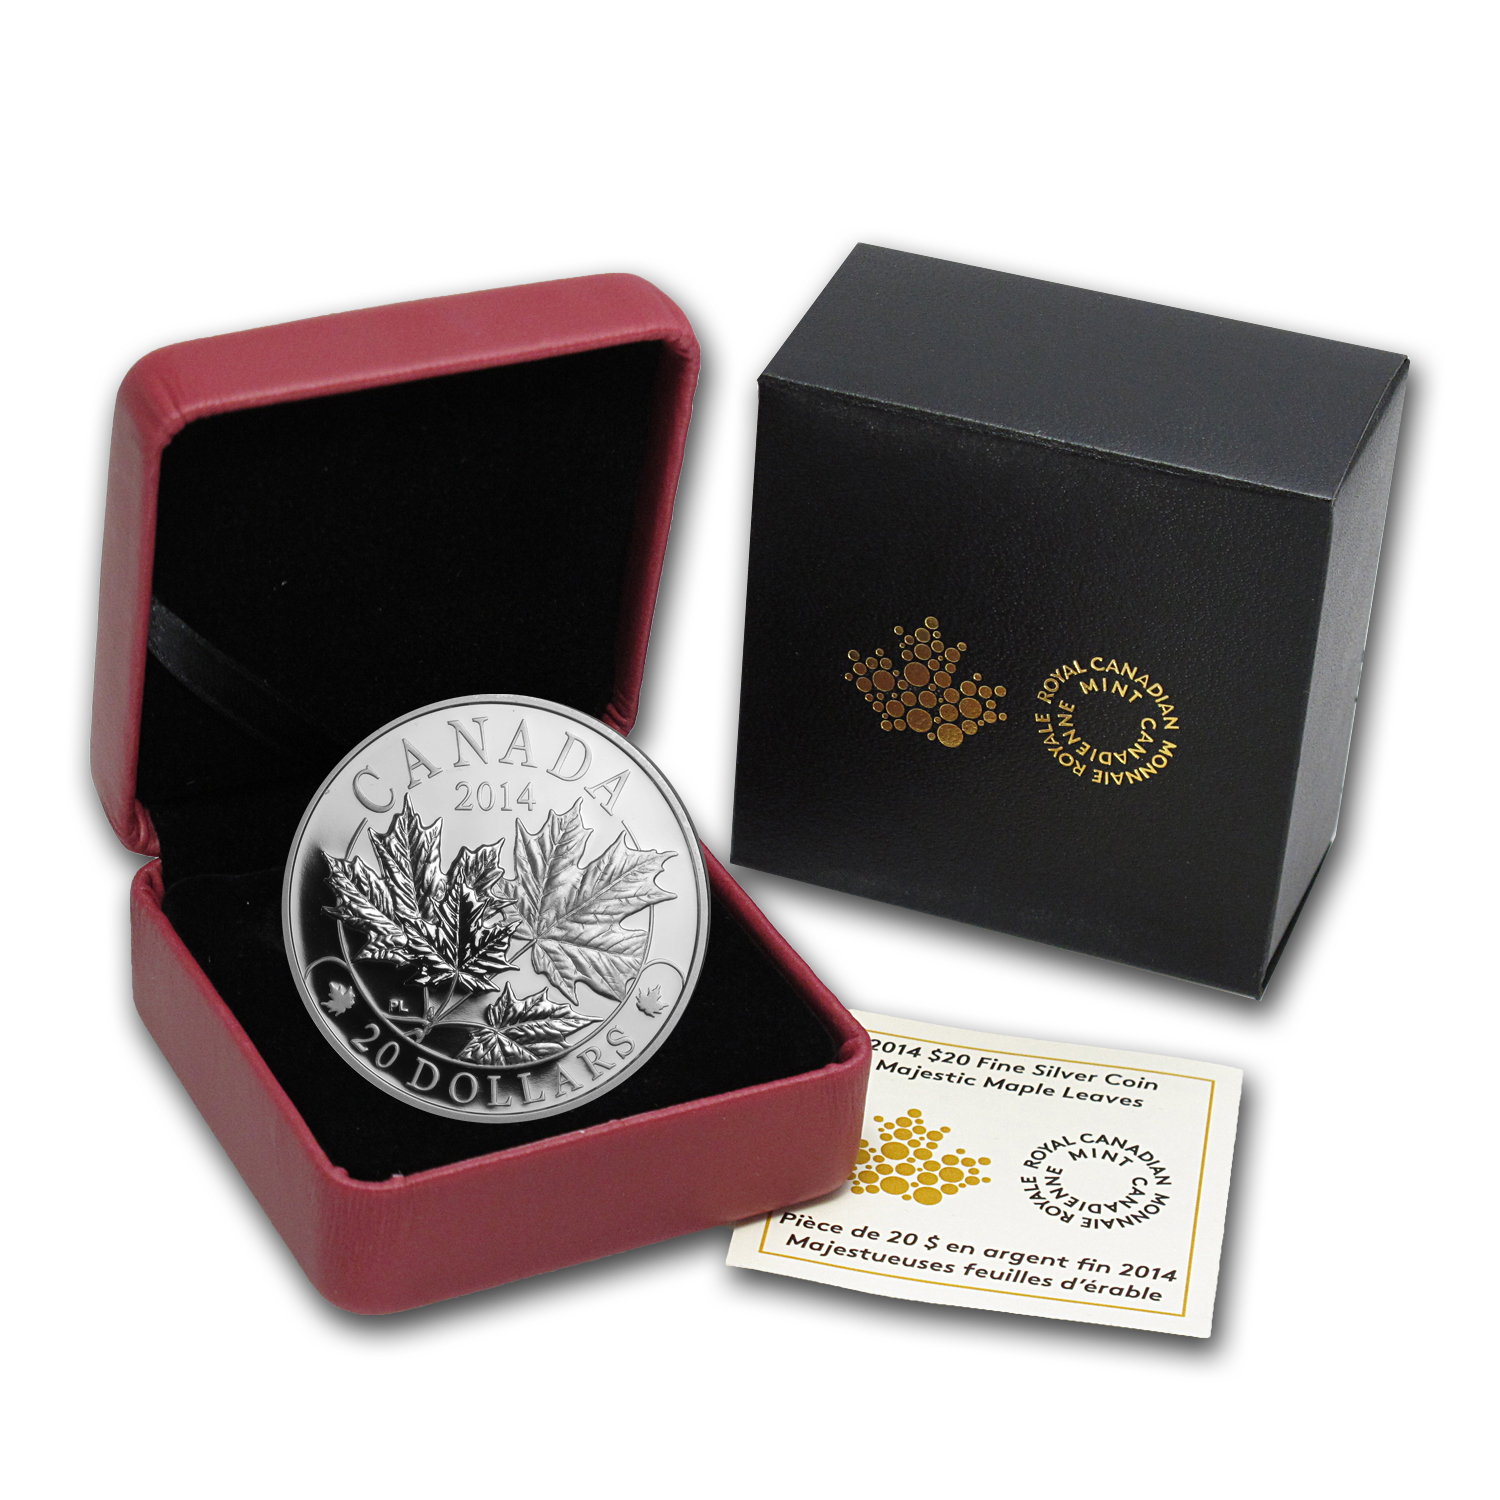 2014 Canada 1 oz Silver Majestic Maple Leaves Proof